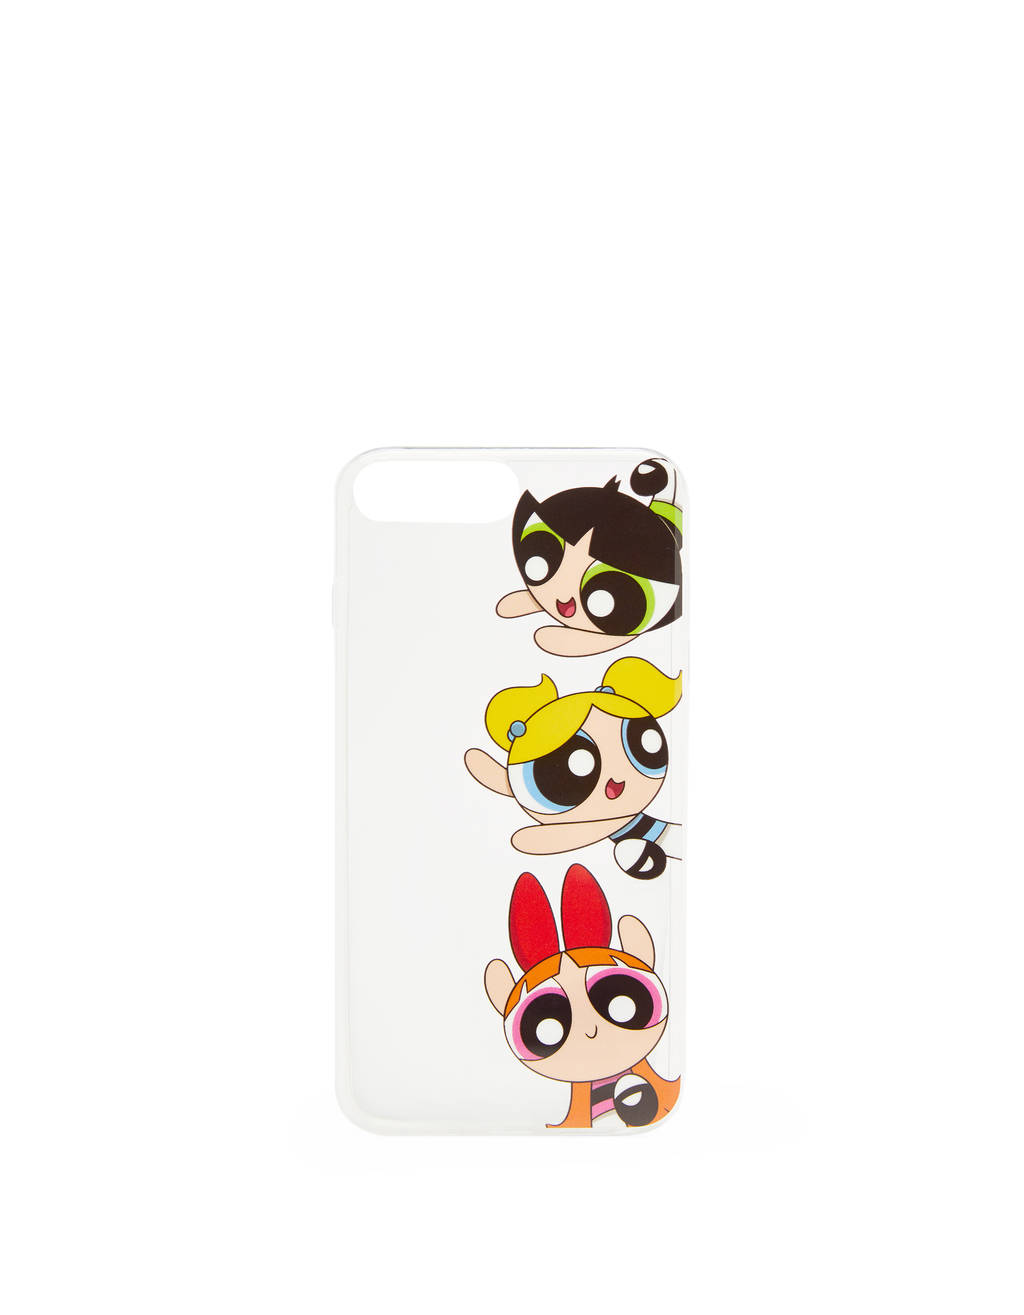 Powerpuff Girls iPhone 6 Plus / 7 Plus / 8 Plus case